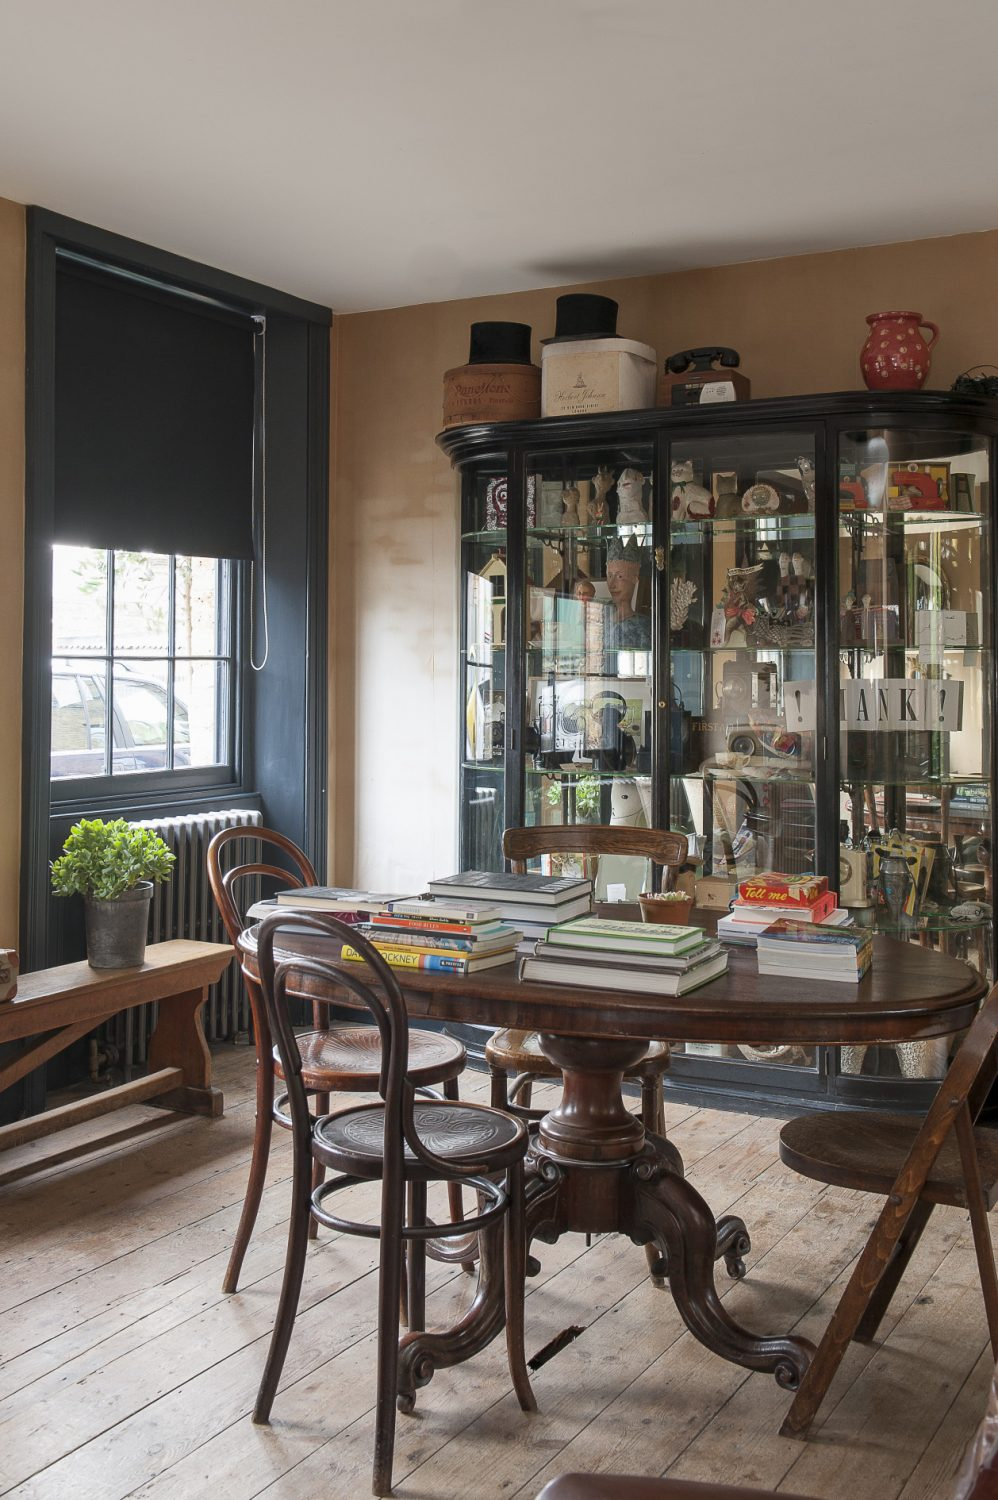 Against the wall is a large, glass-fronted 'cupboard of curiosities' which in a way reflects the eclectic contents of the building itself